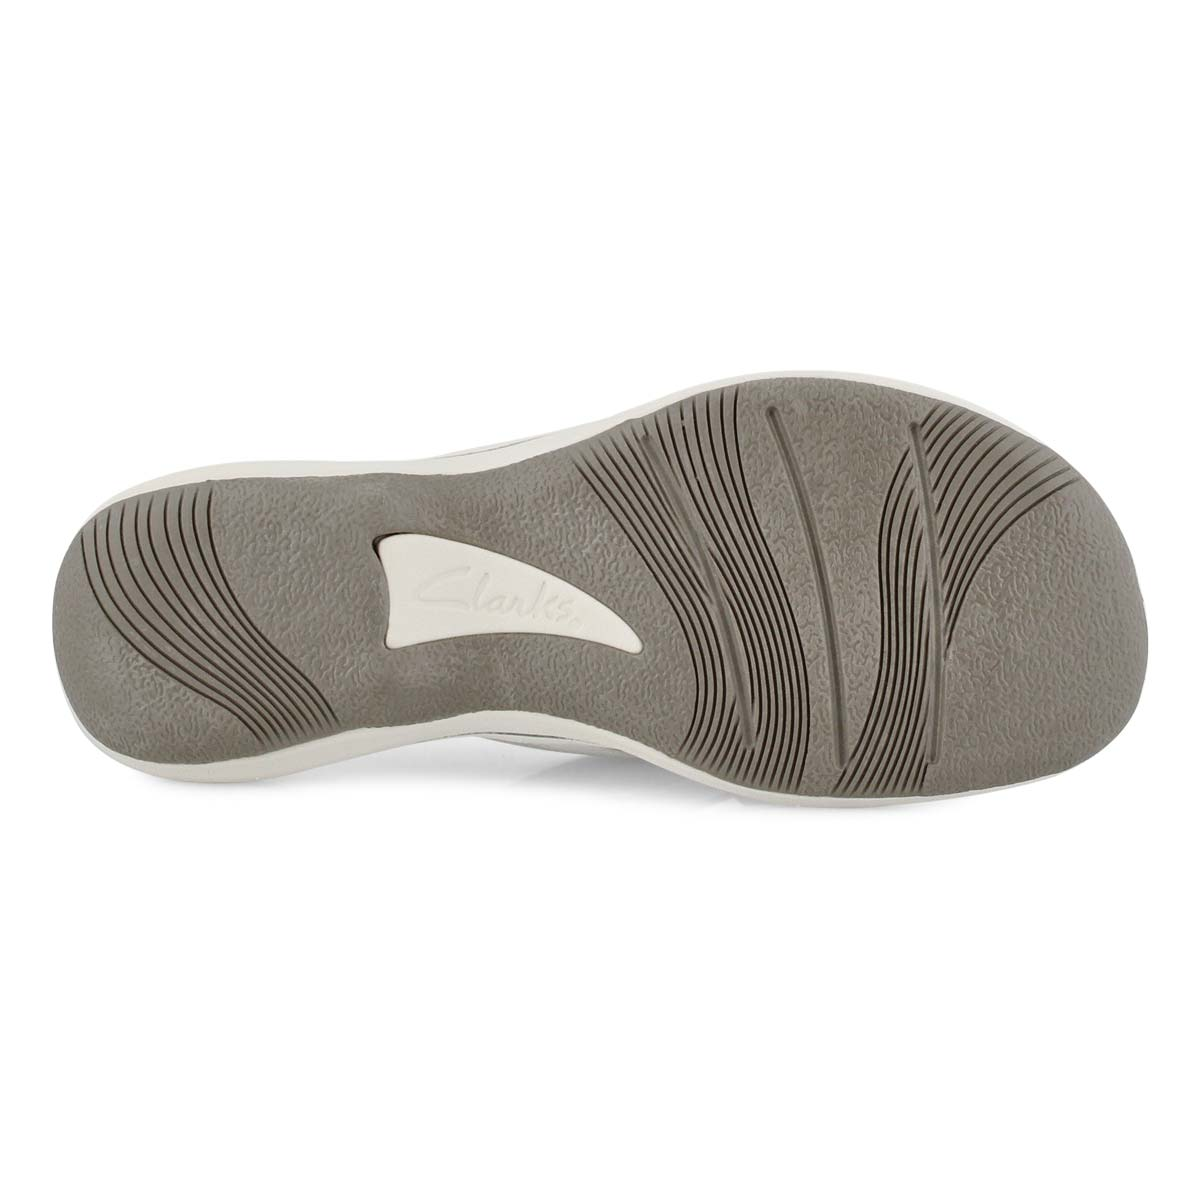 Lds Breeze Sea white thong sandal